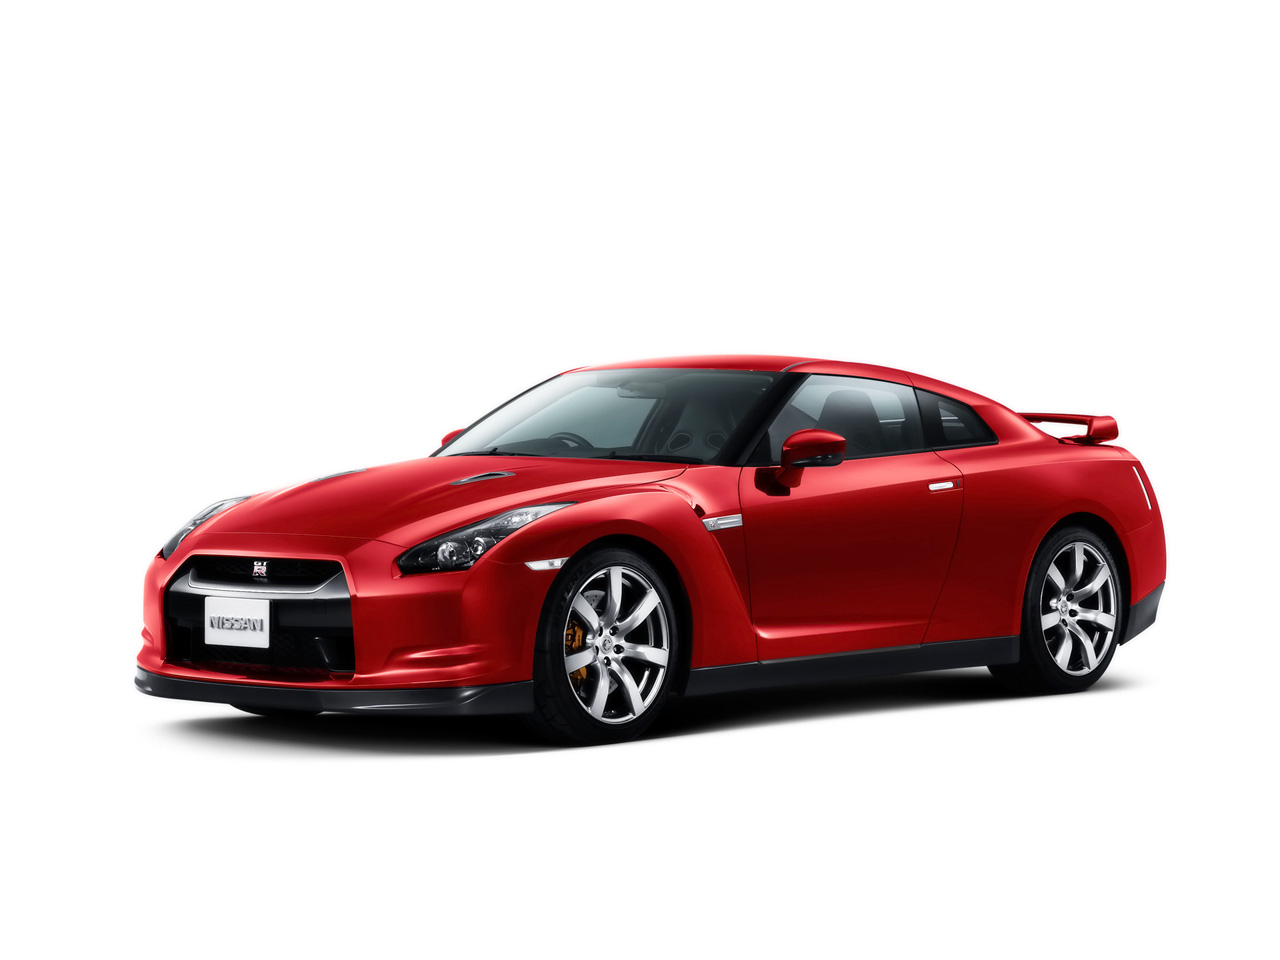 Nissan GT-R Background For Free